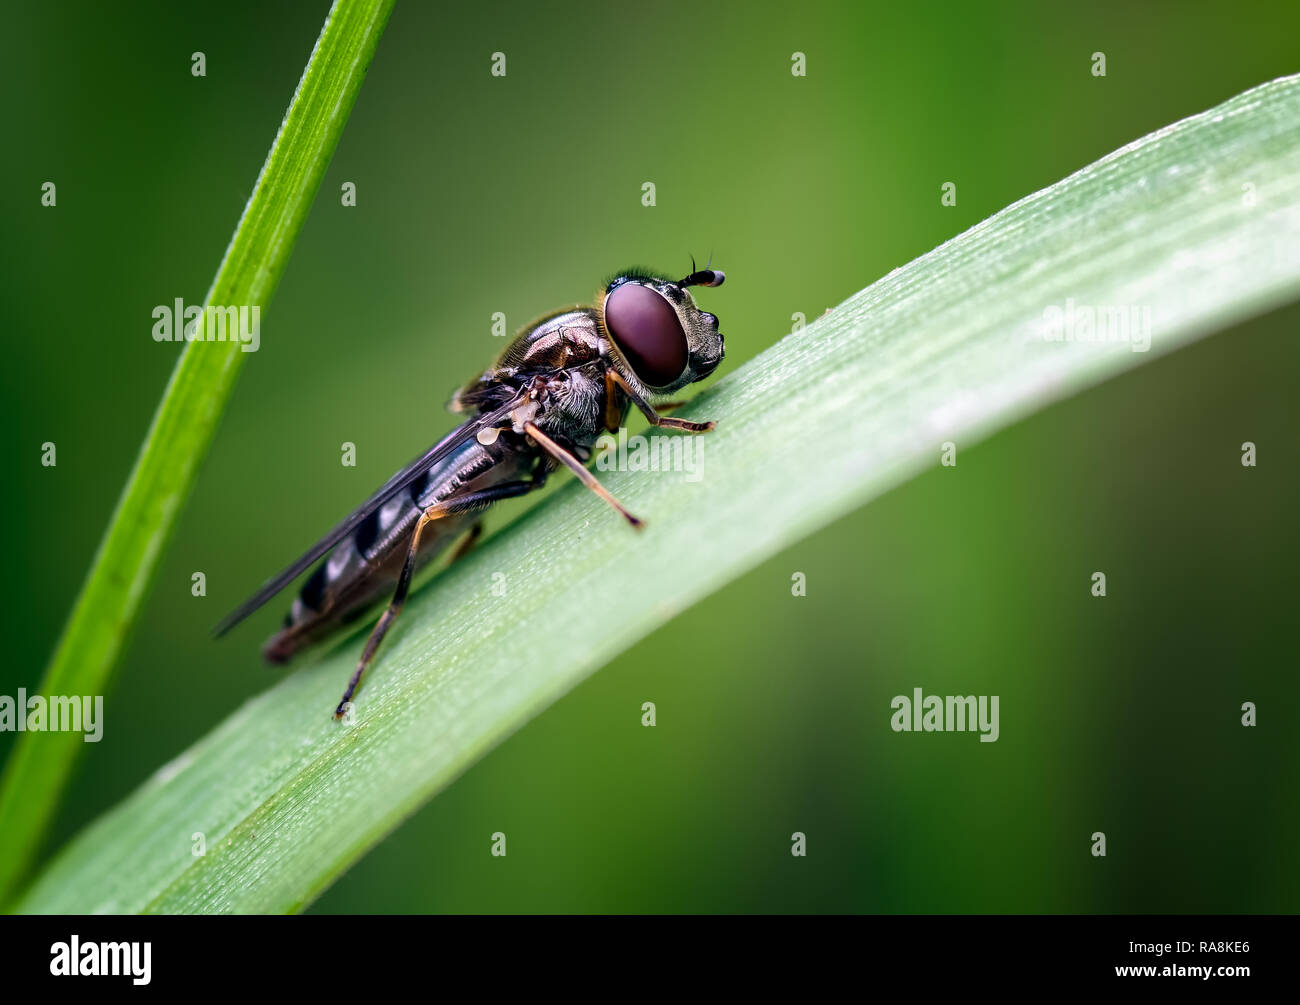 This hoverfly was posing nicely on a grass blade in a meadow near the coast in Jemimaville on the Black Isle, Scotland. - Stock Image